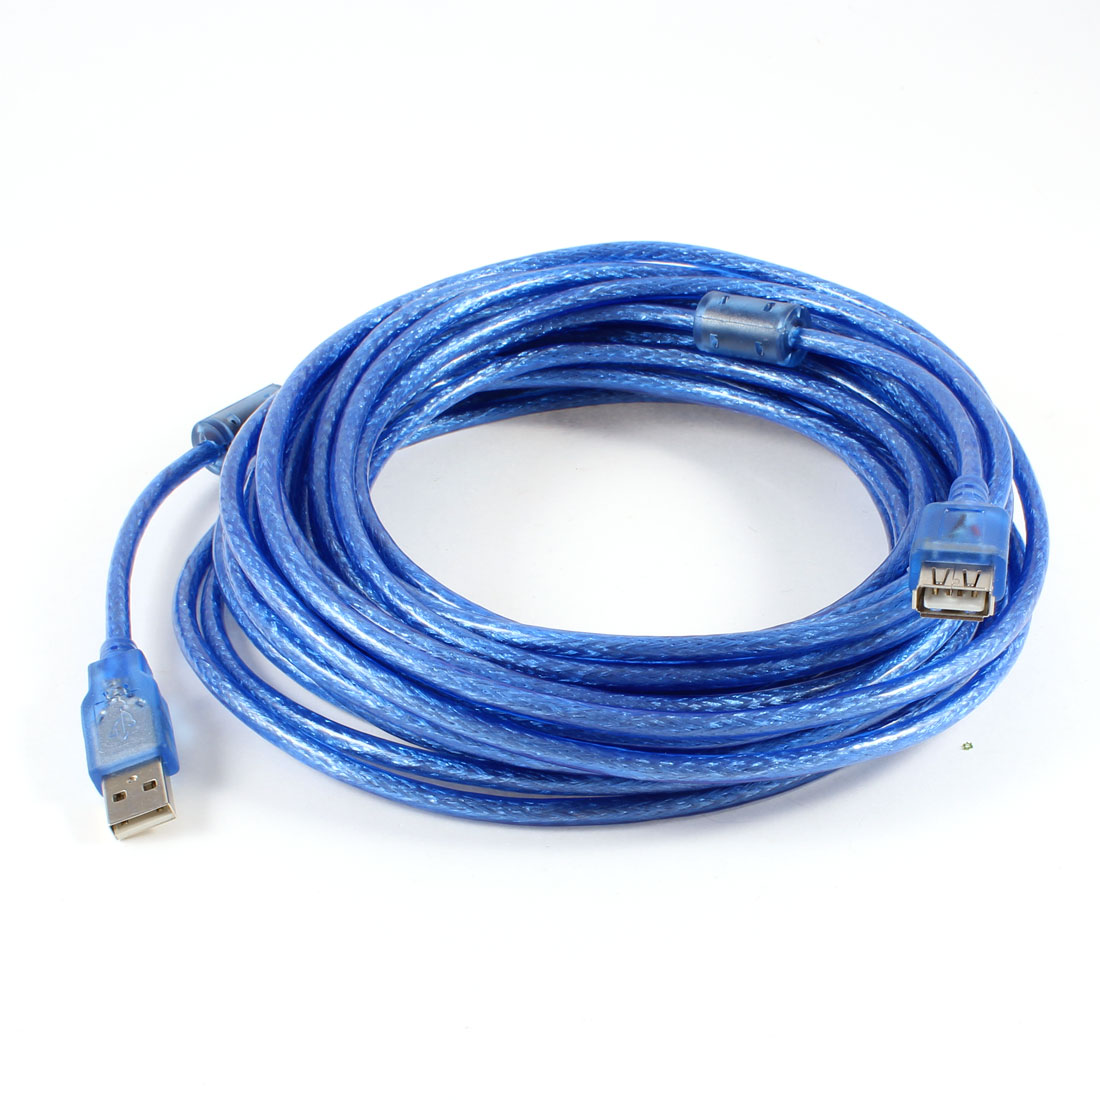 10M USB 2.0 A Male to Female Extension Cable Clear Blue for PC Laptop